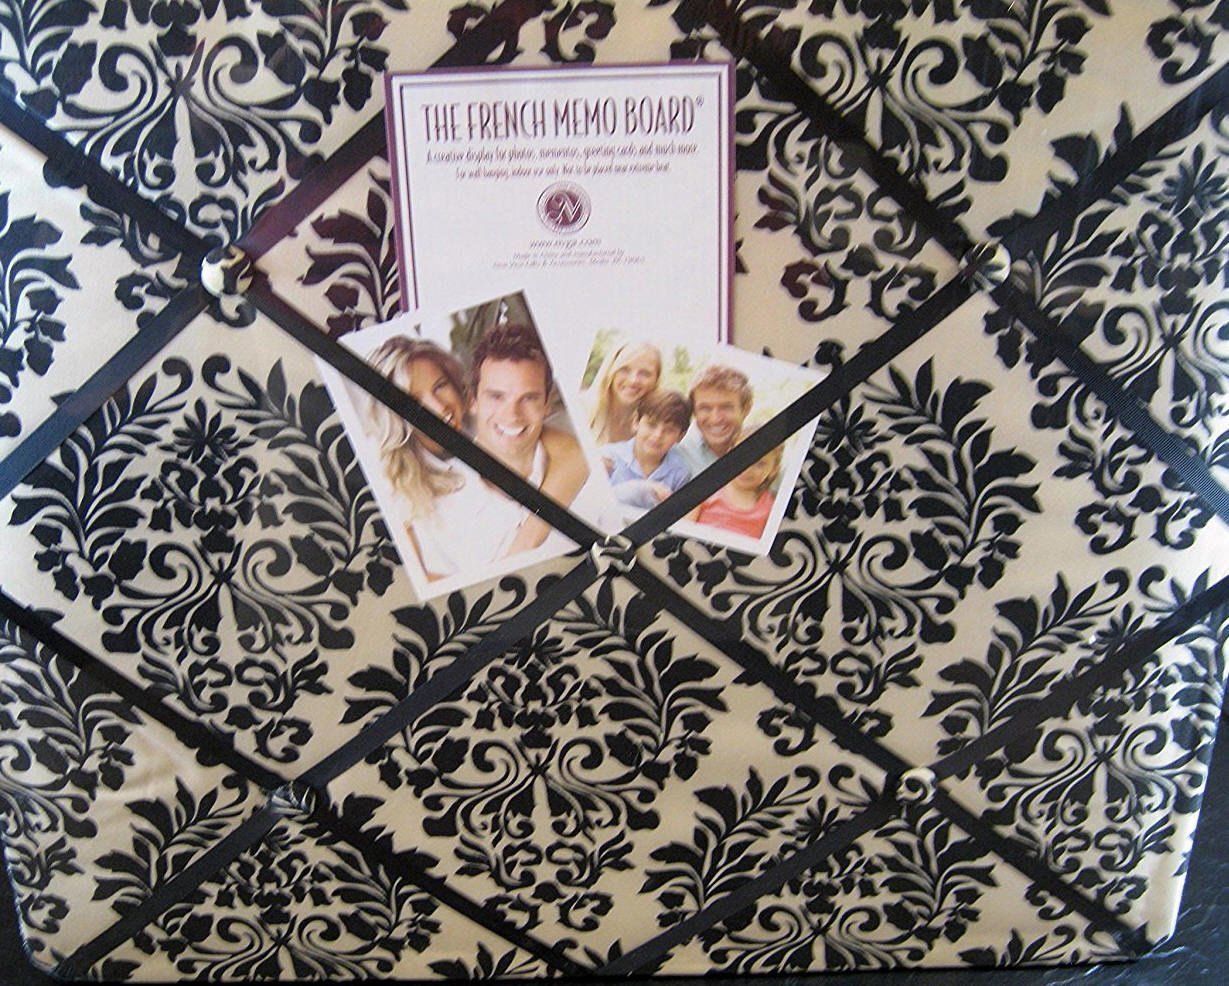 The French Memo Board-a Creative Display for Photos, Mementos, Greeting Cards and Much More-Contemporary -Black and Cream Damask- Factory Sealed by The French Memo Board (Image #1)